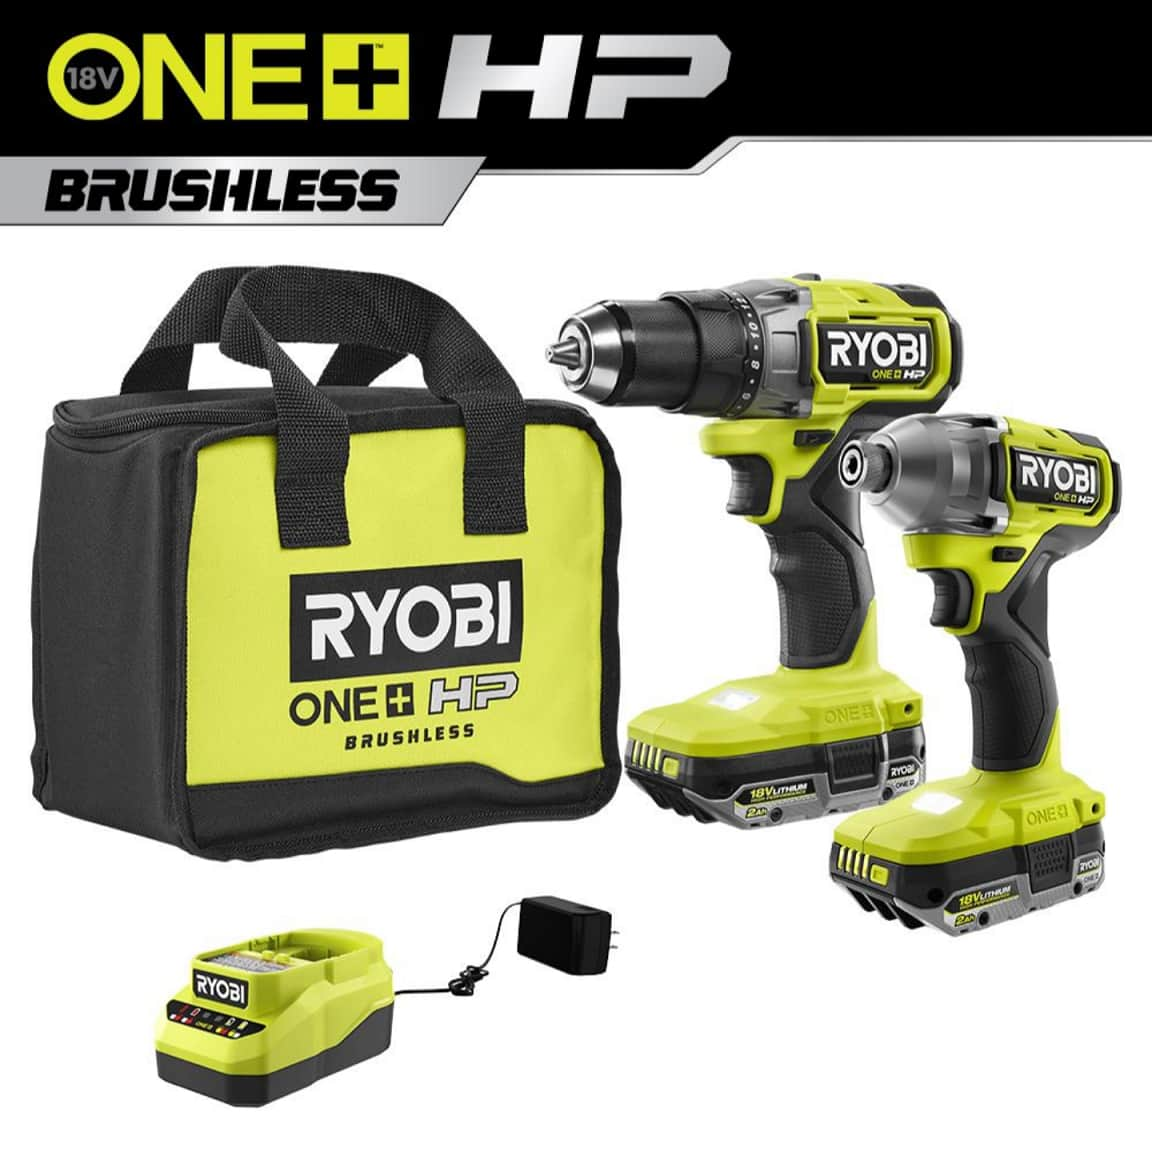 ONE+ HP 18V Brushless Cordless 1/2 in. Drill/Driver (PBLDD01) and Impact Driver (PBLID01) Kit w/ (2) 2.0 Ah High Performance Batteries, Charger, and Bag $147.76